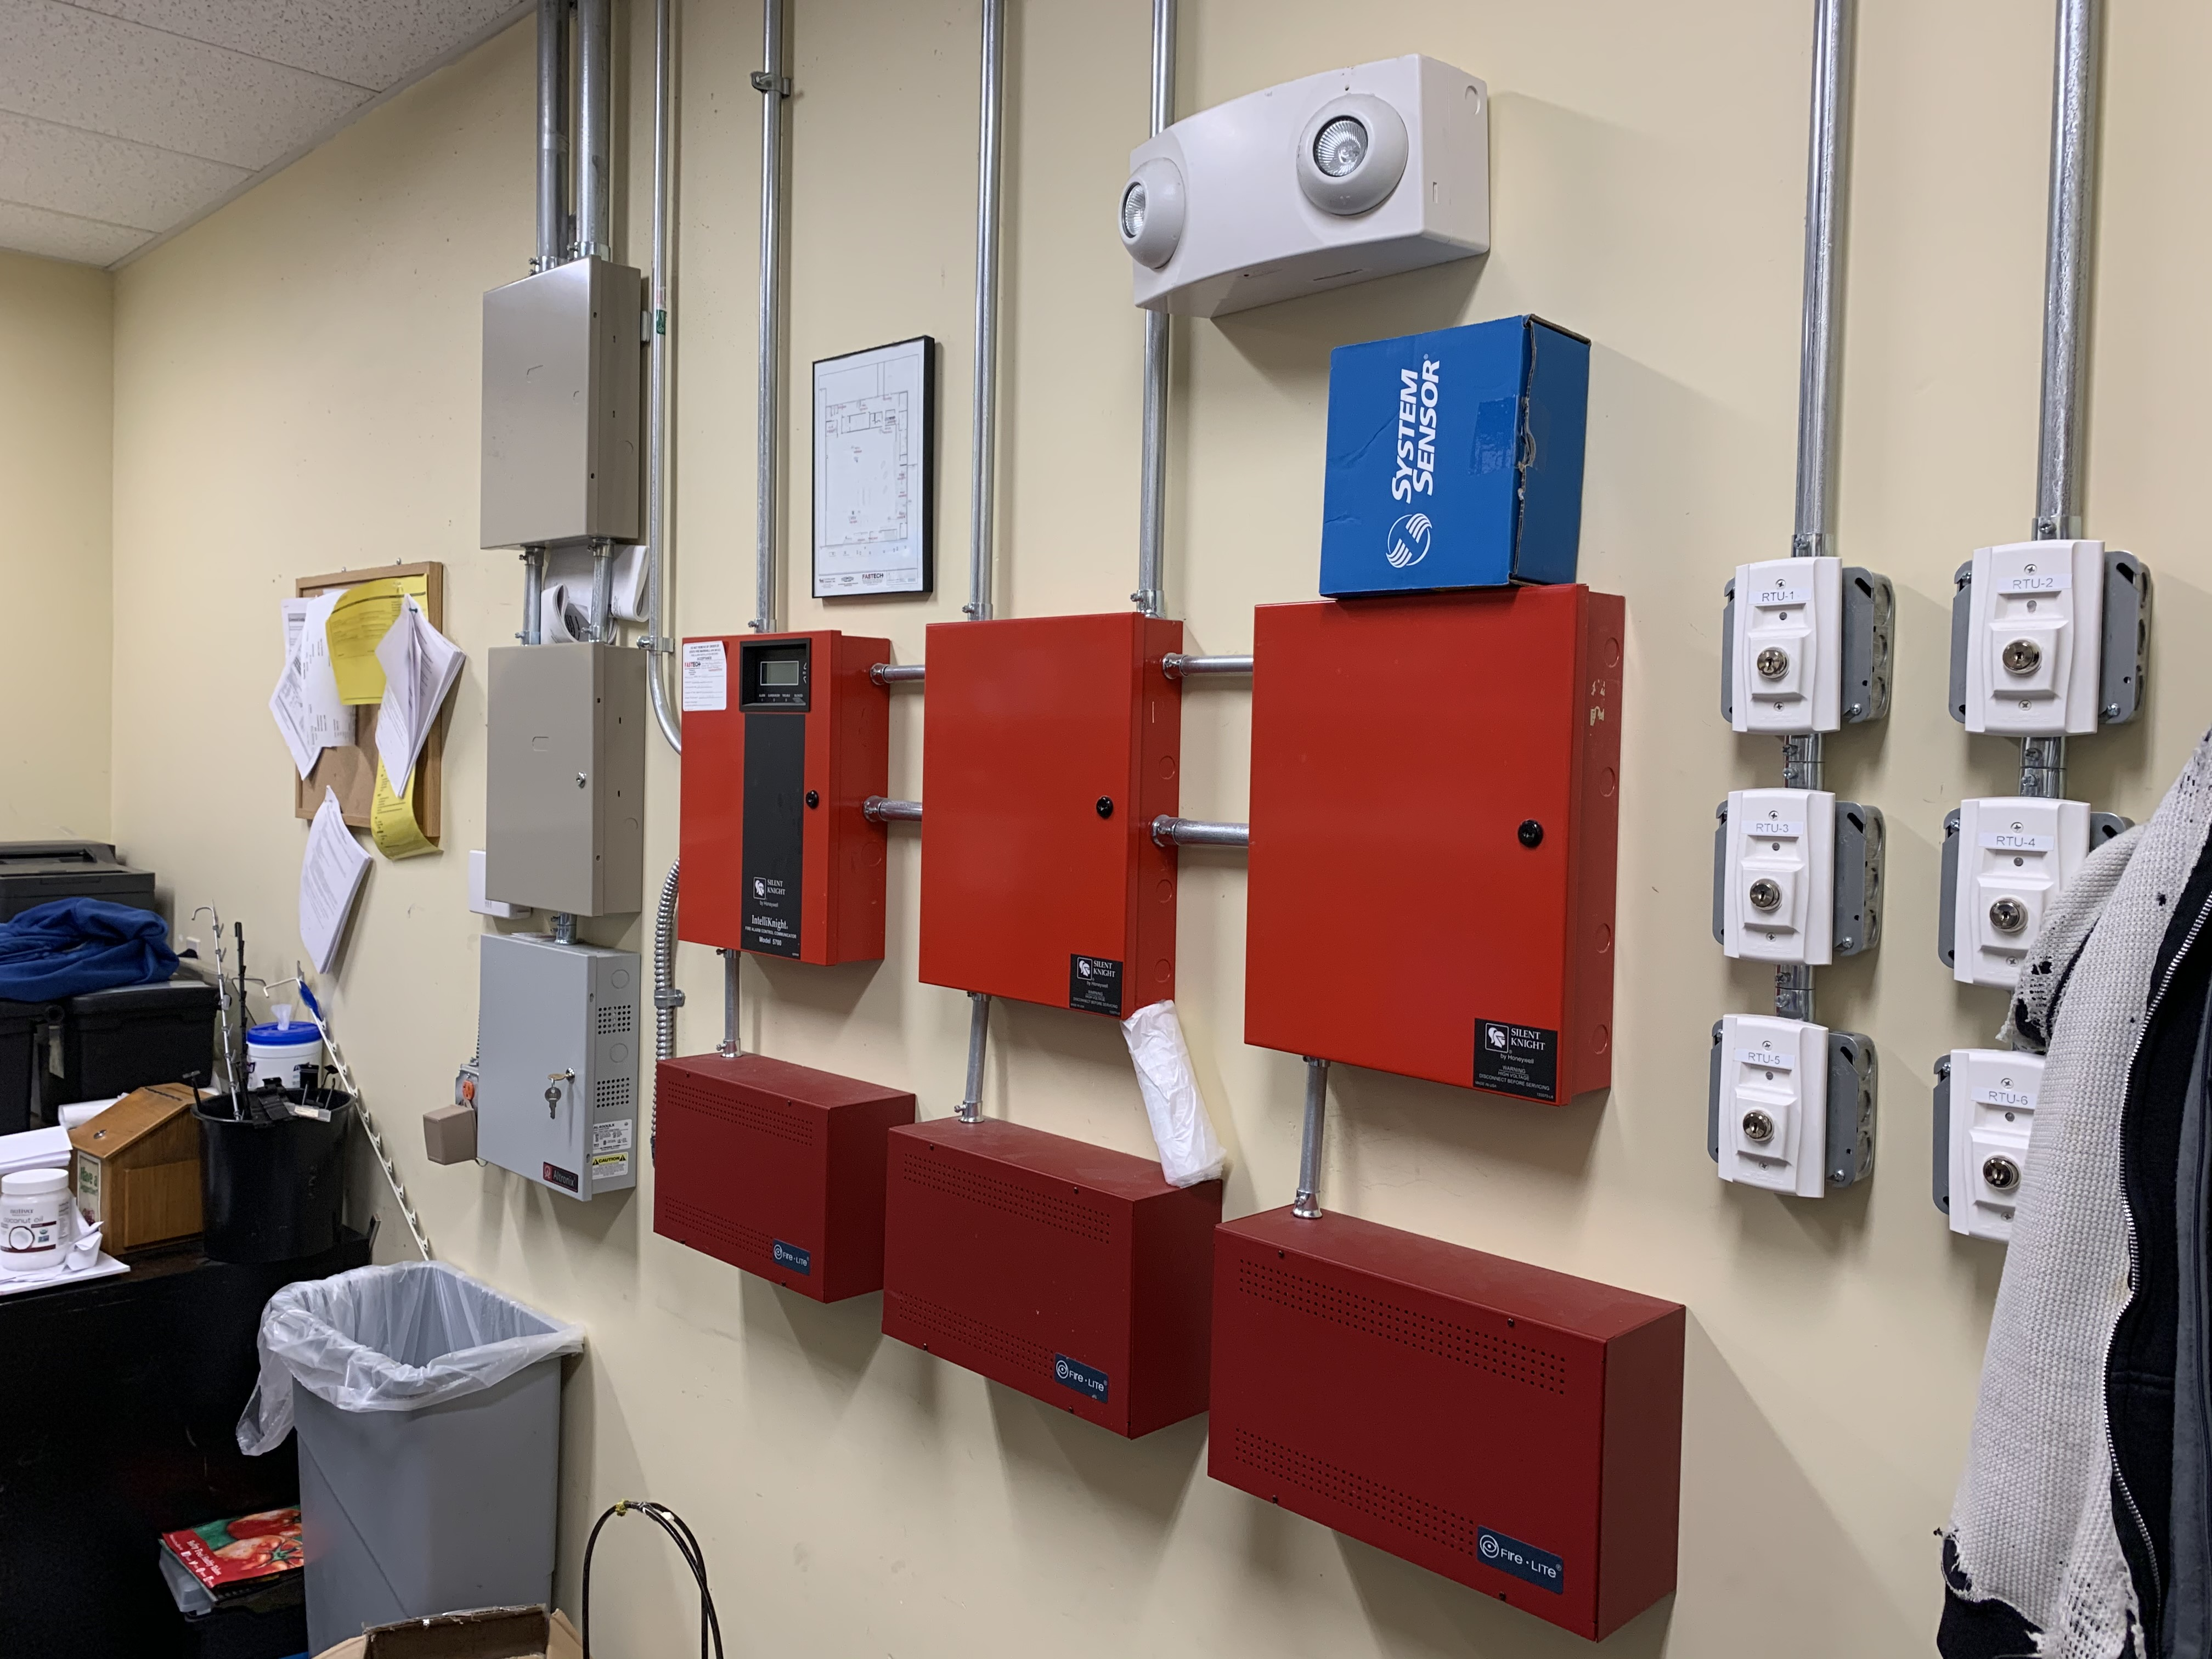 Commercial Fire Alarm System Dayton OH